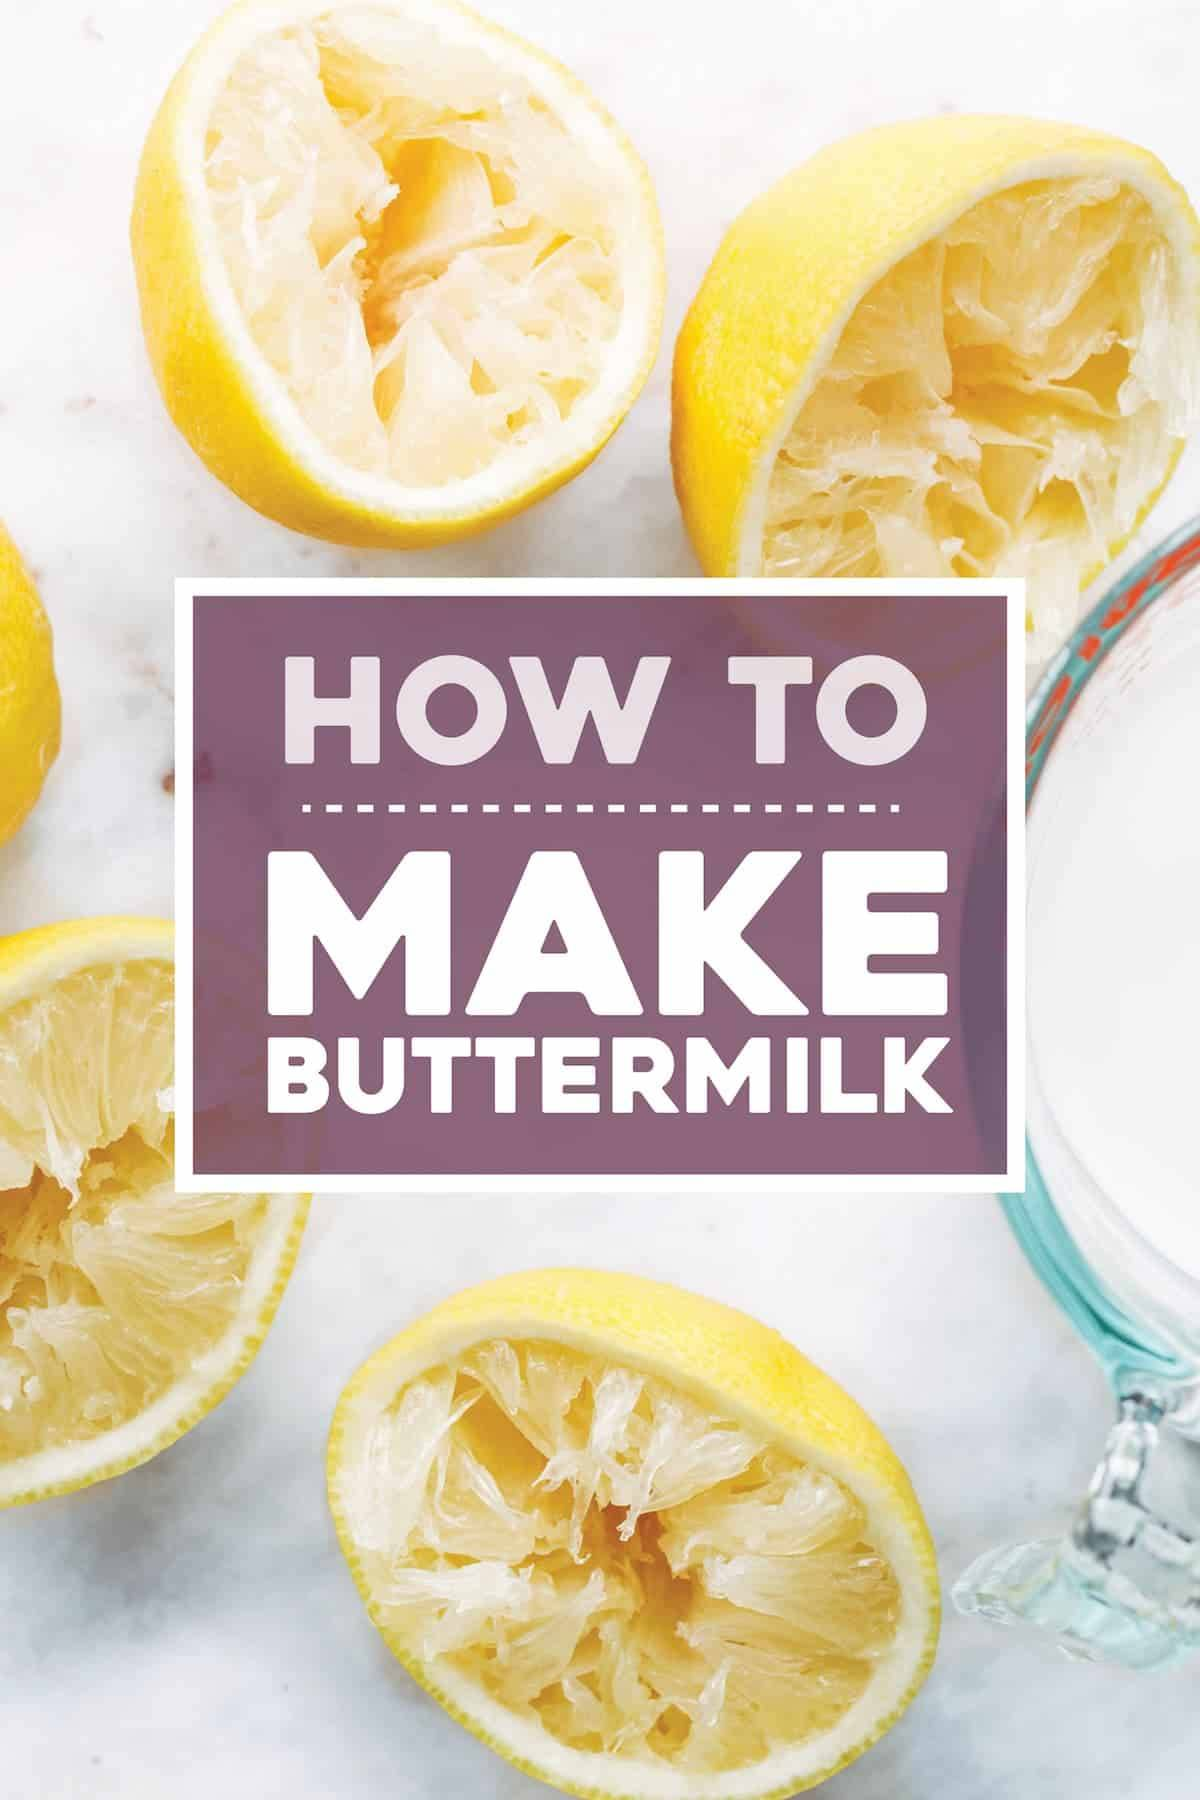 How to make buttermilk.